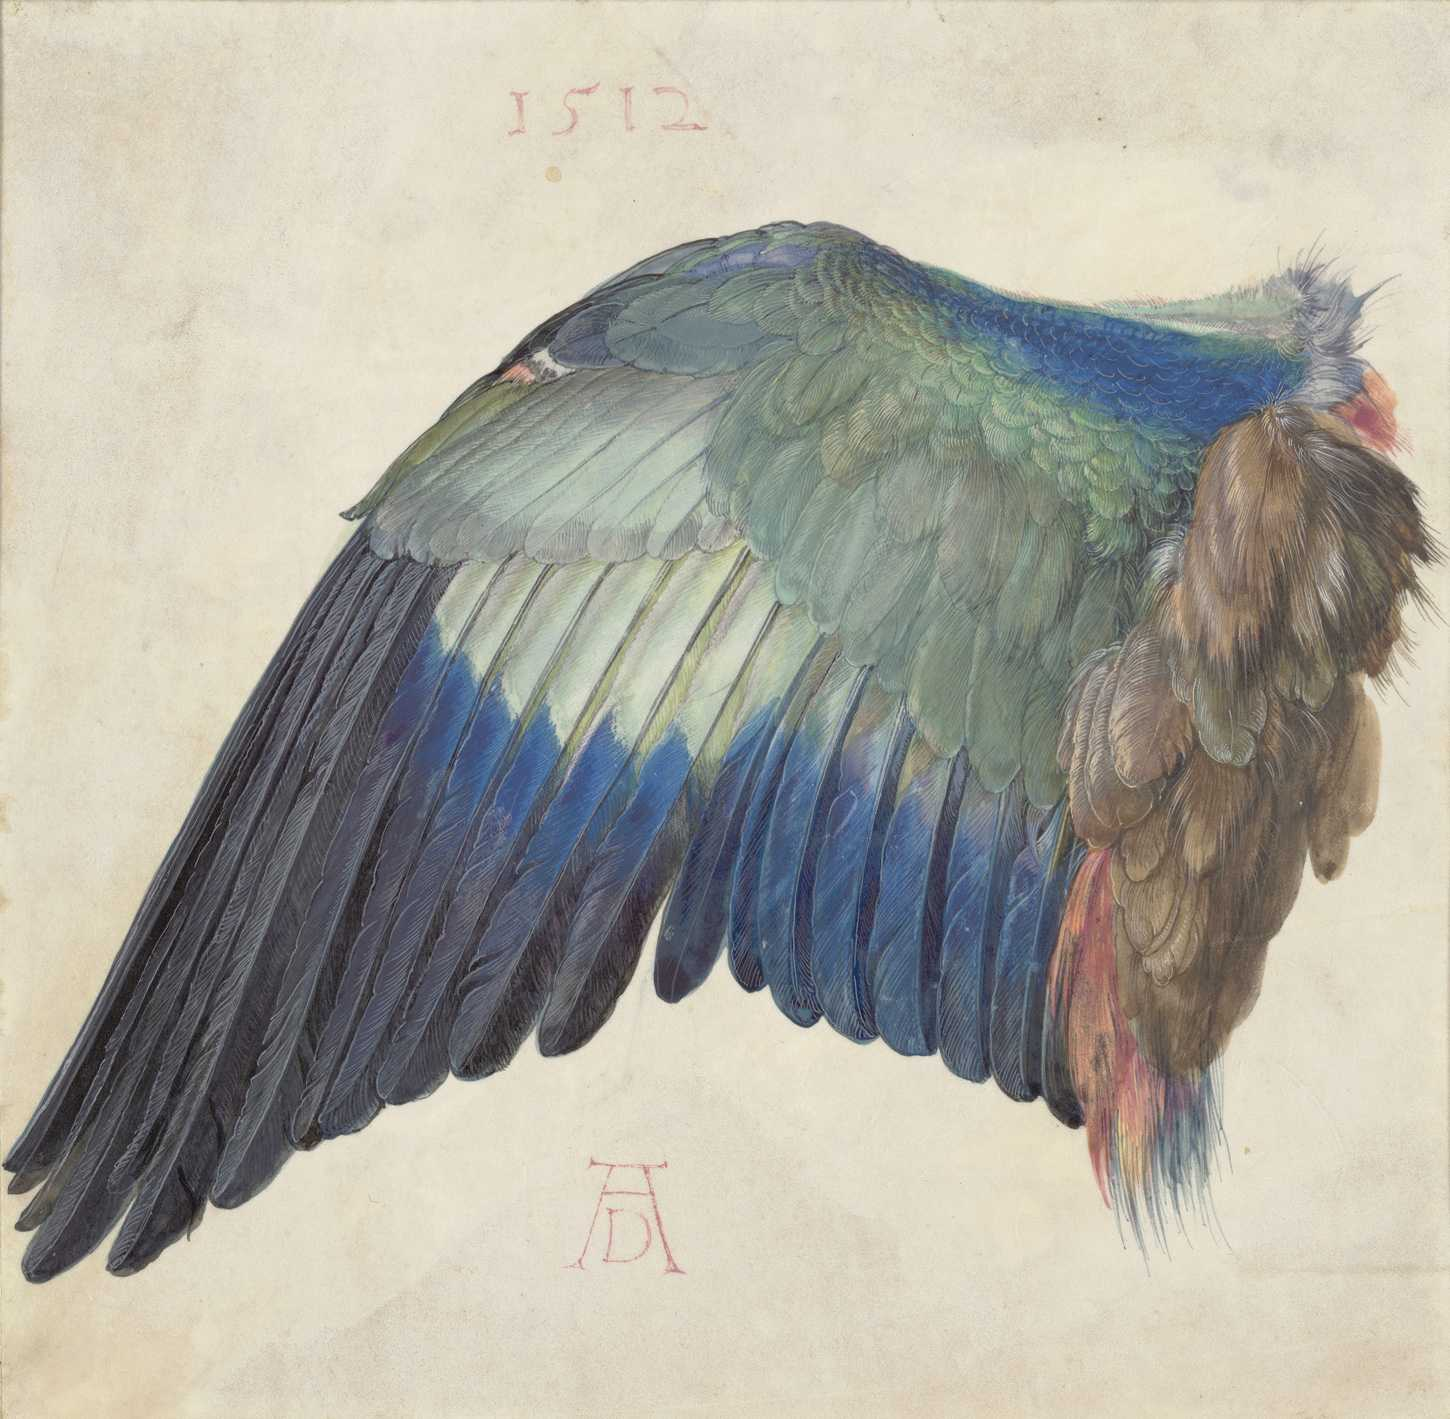 Albrecht Dürer Wing of a Blue Roller, ca. 1500 (or 1512) Watercolor and body color, heightened with white body color, on vellum © The Albertina Museum, Vienna